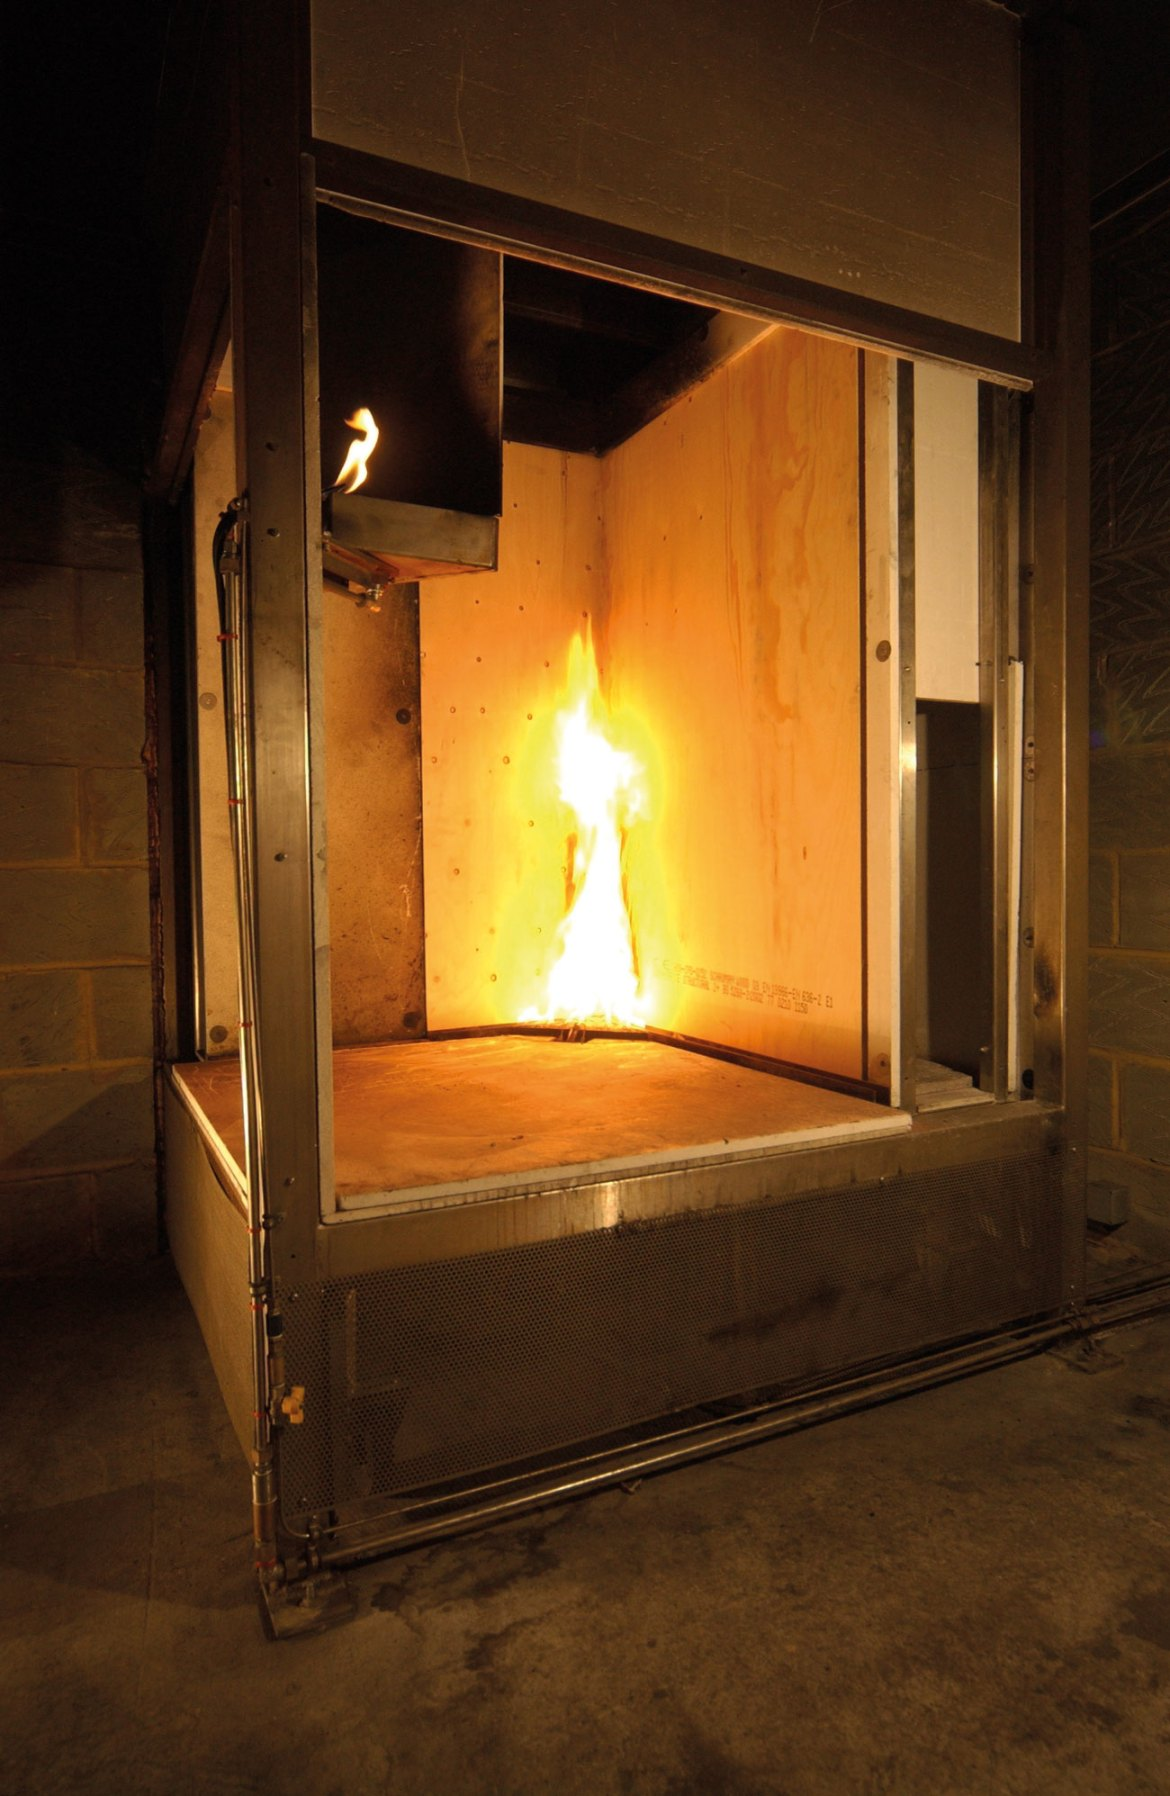 Typical test chamber in which smoke and toxicity testing is conducted for materials used in an aircraft.